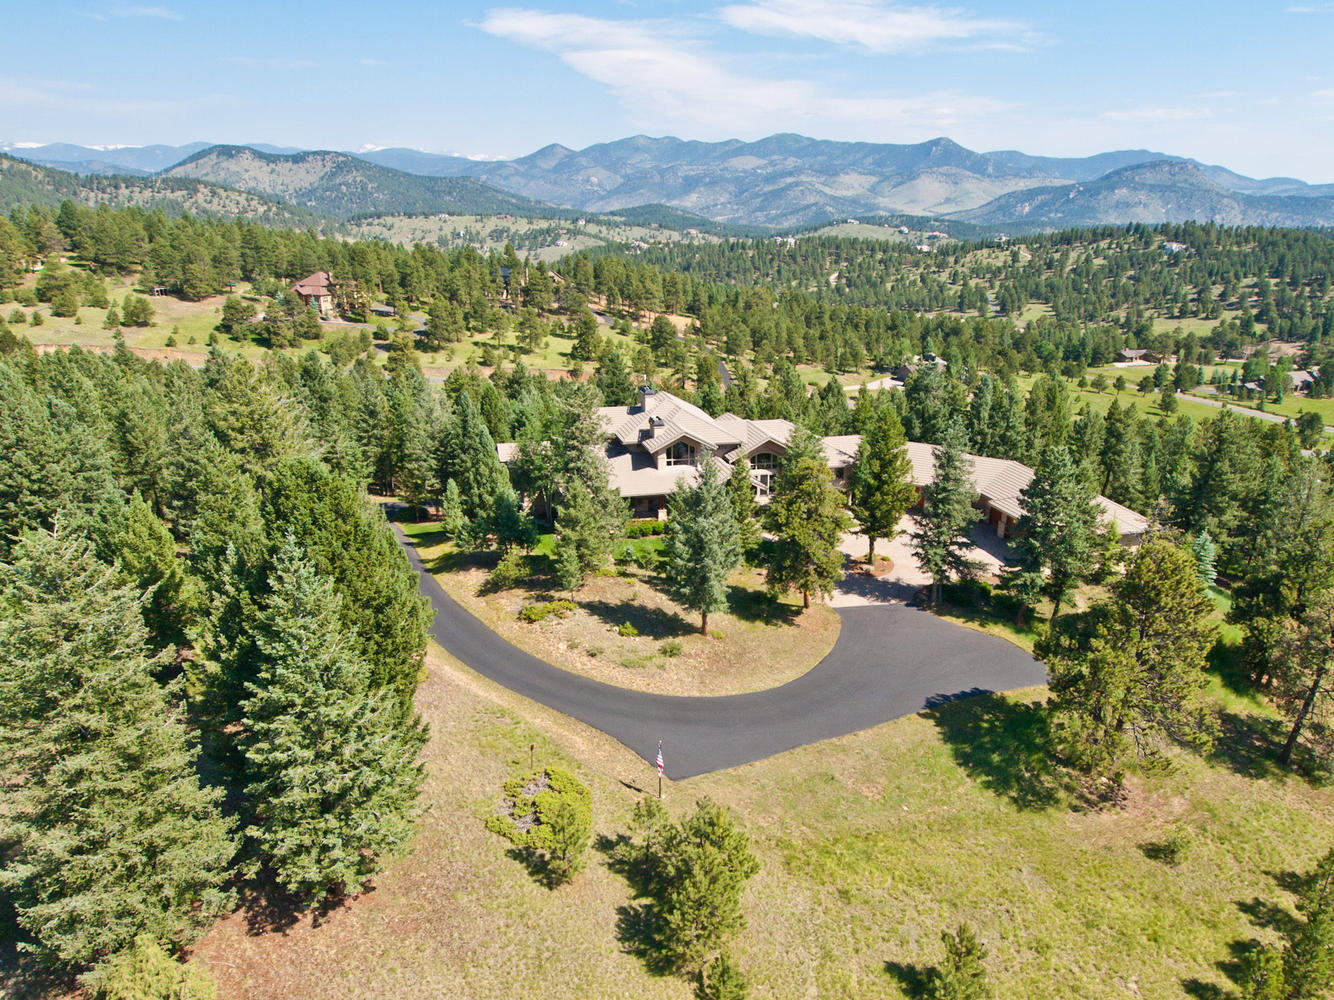 Single Family Home for Sale at One of Evergreen's Best Locations 32534 Meadow Mountain Lane Evergreen, Colorado, 80439 United States